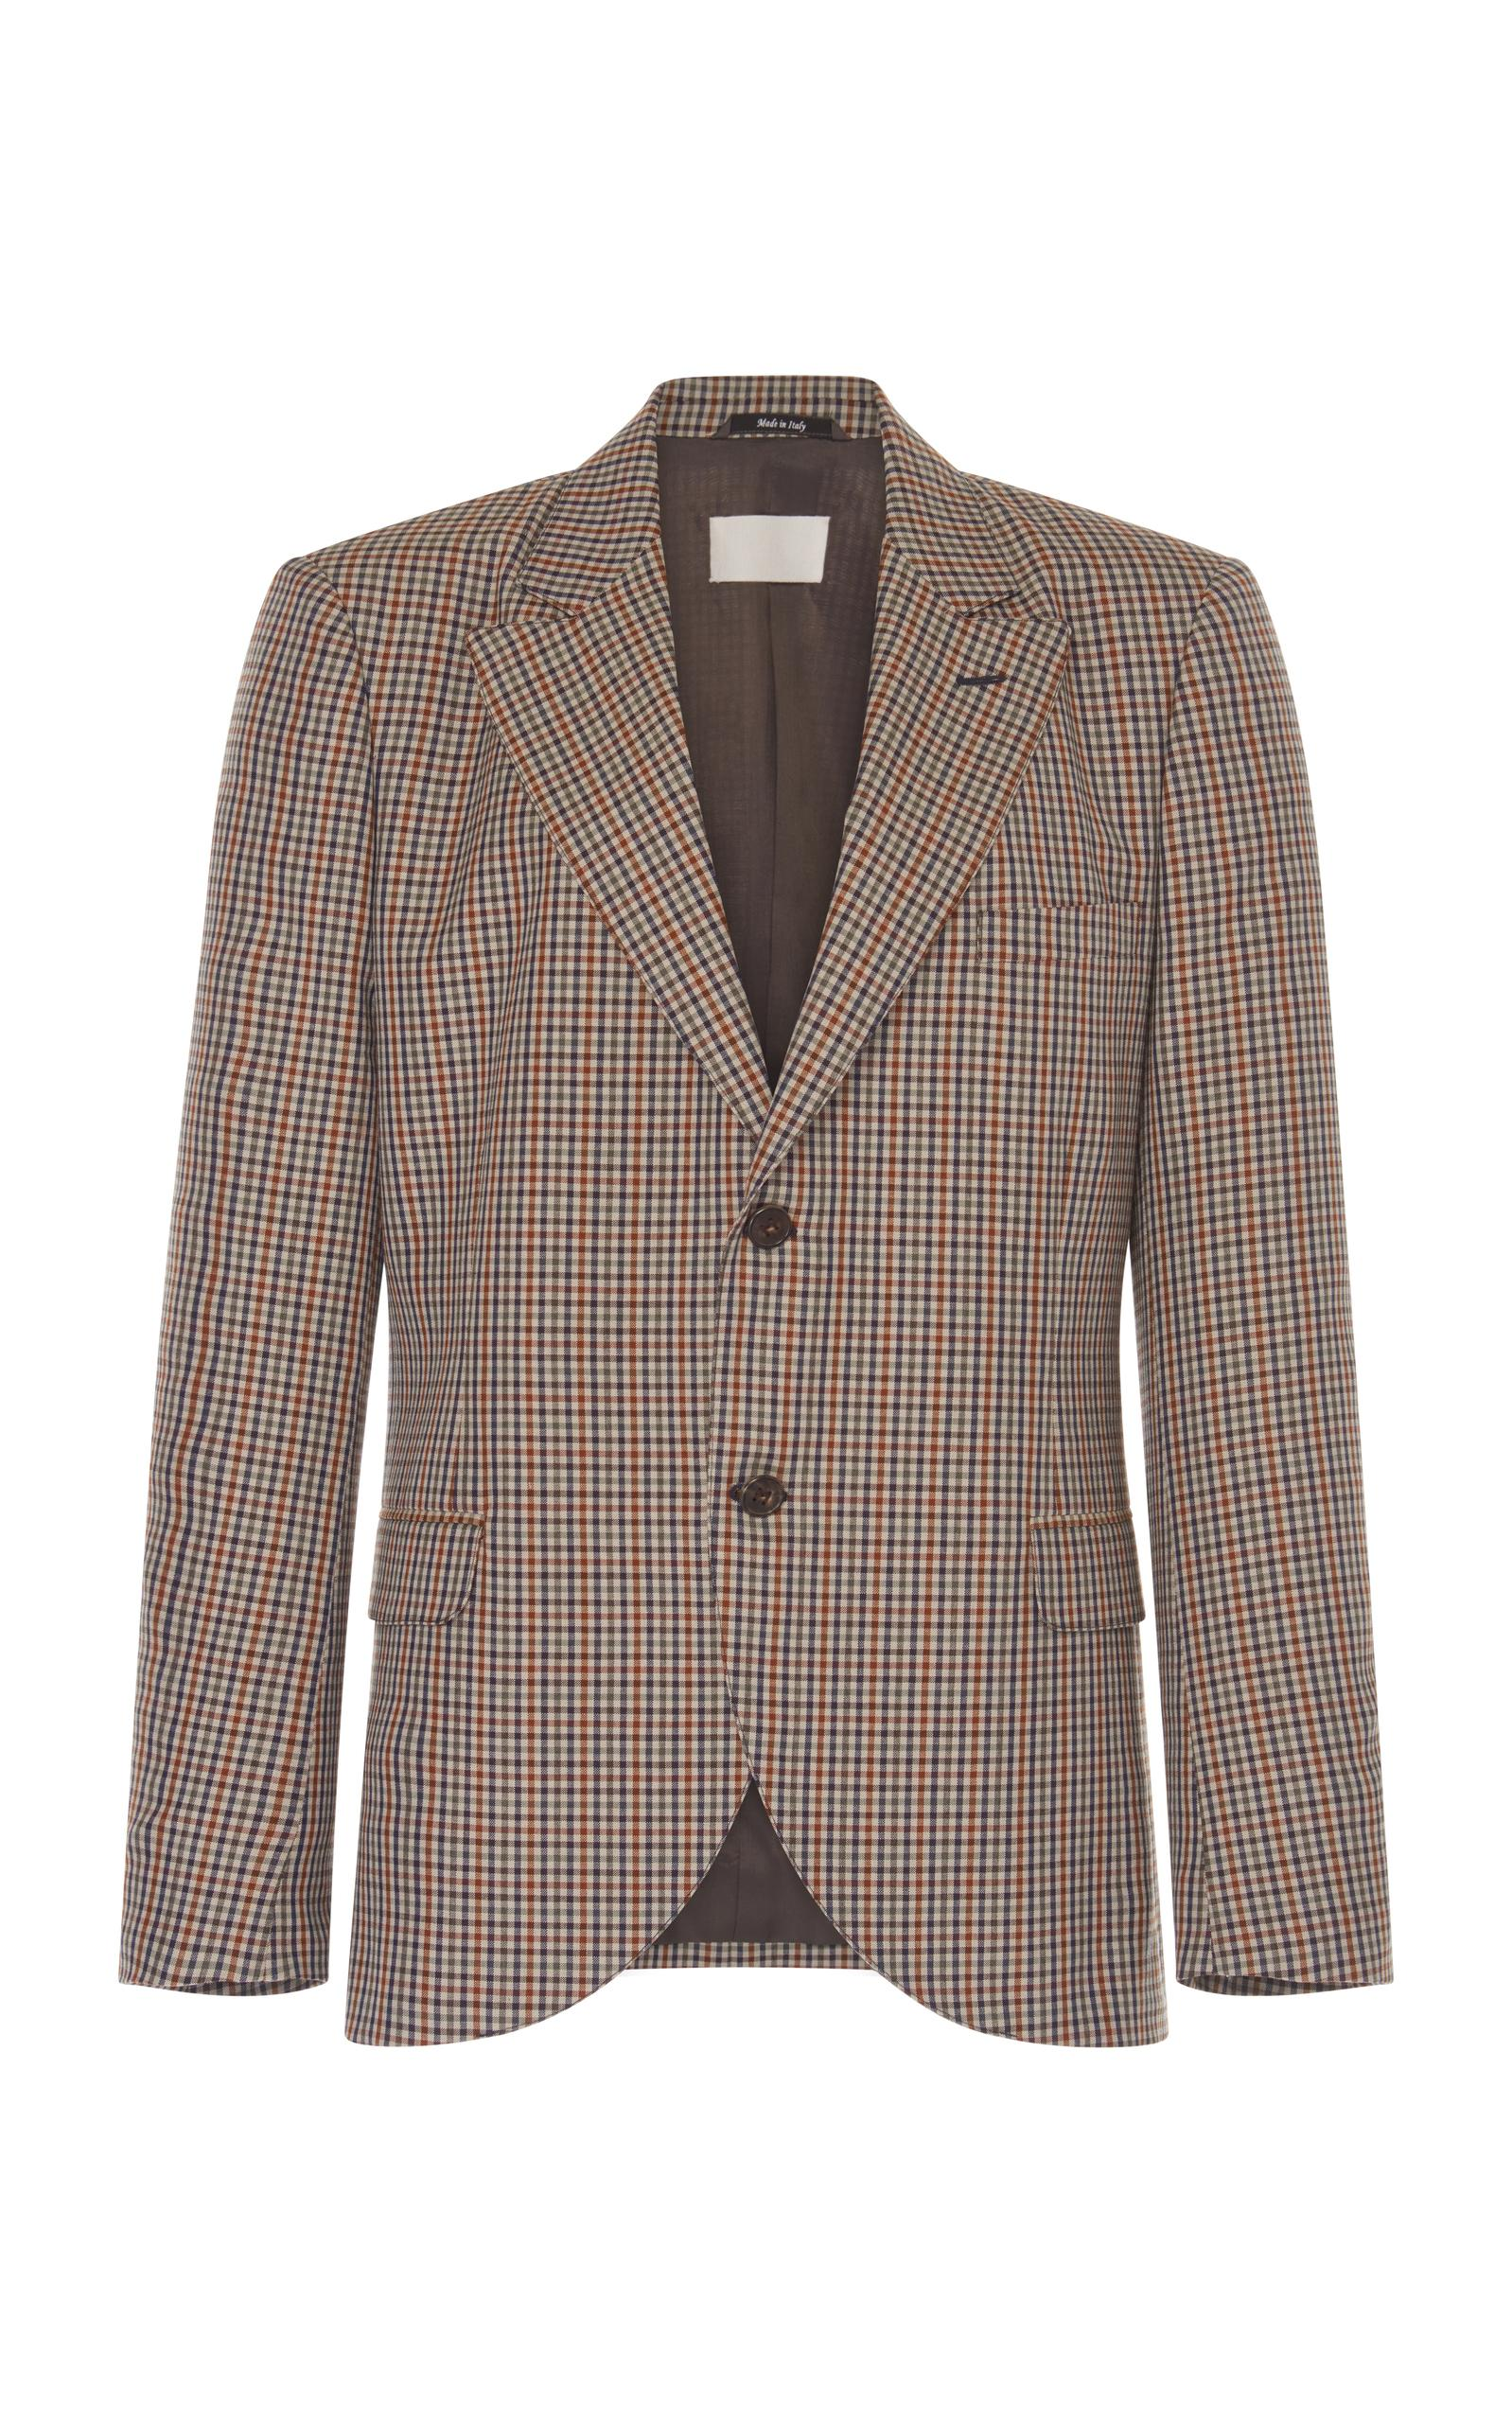 Maison Margiela Micro Check Relaxed Jacket In Plaid